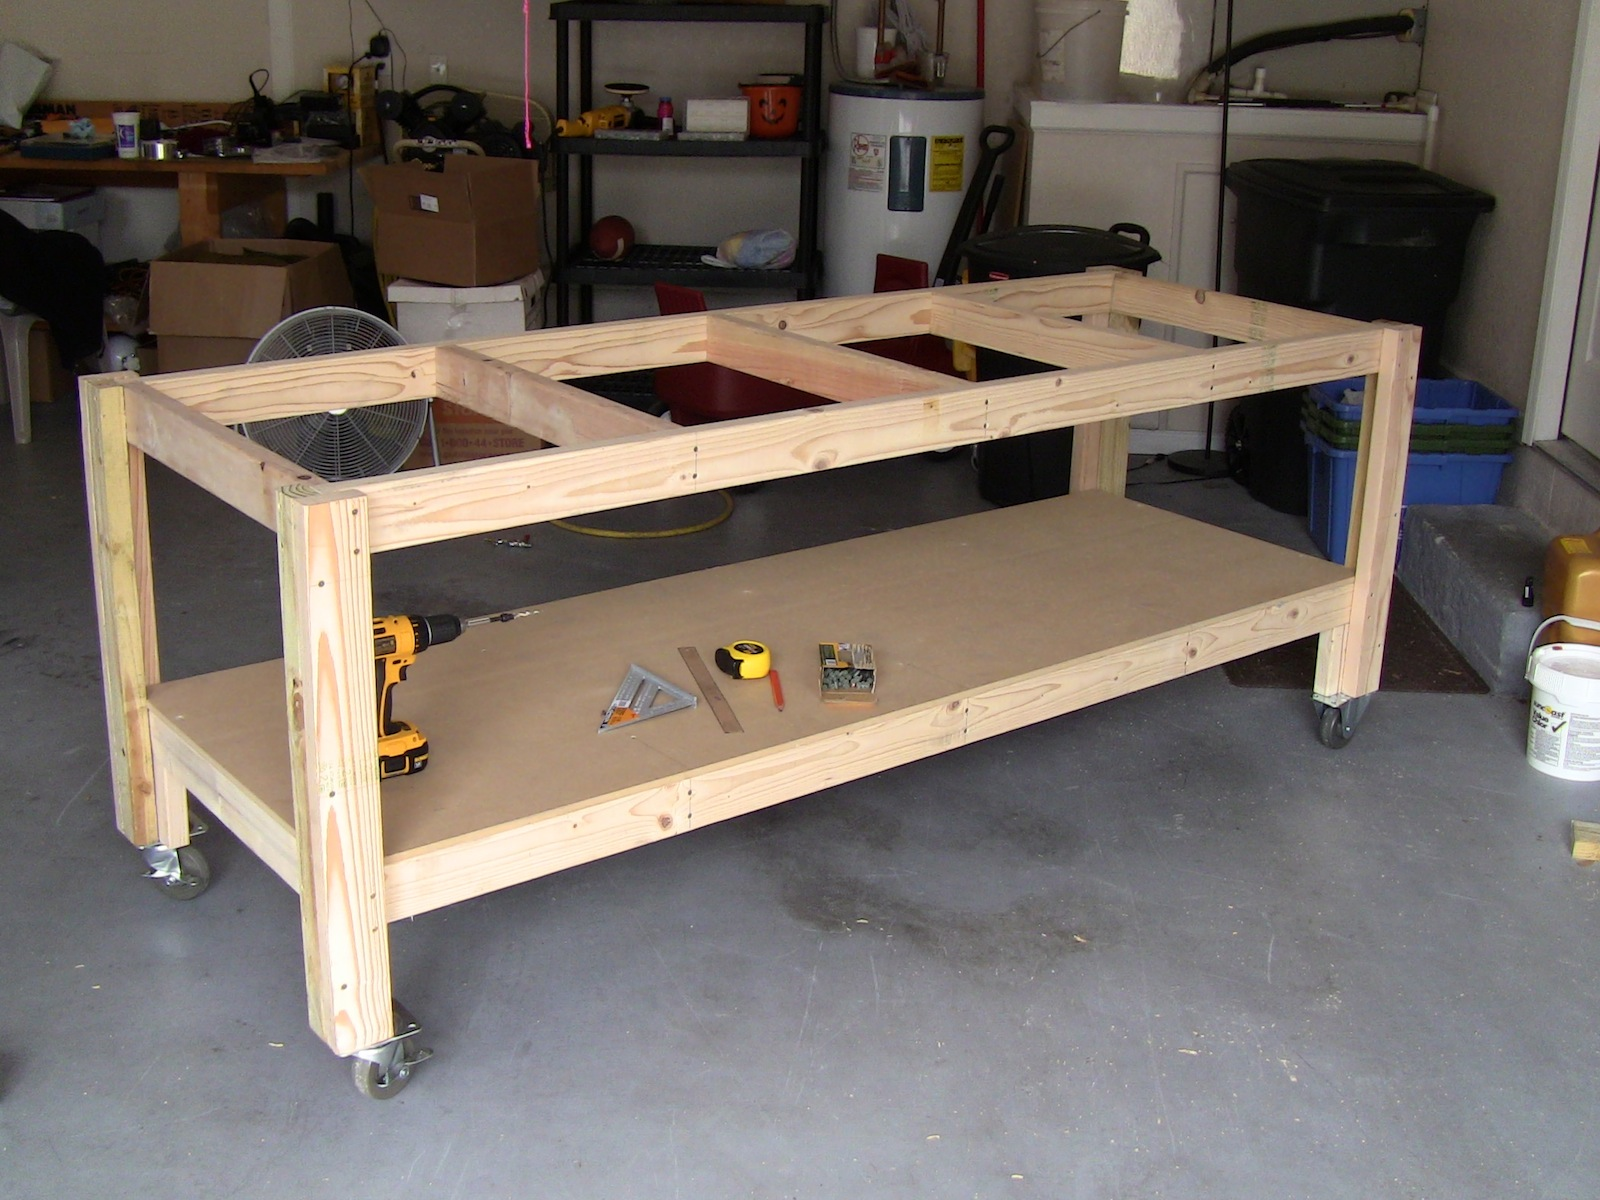 Forums Viewing Message Diy Workbench Project